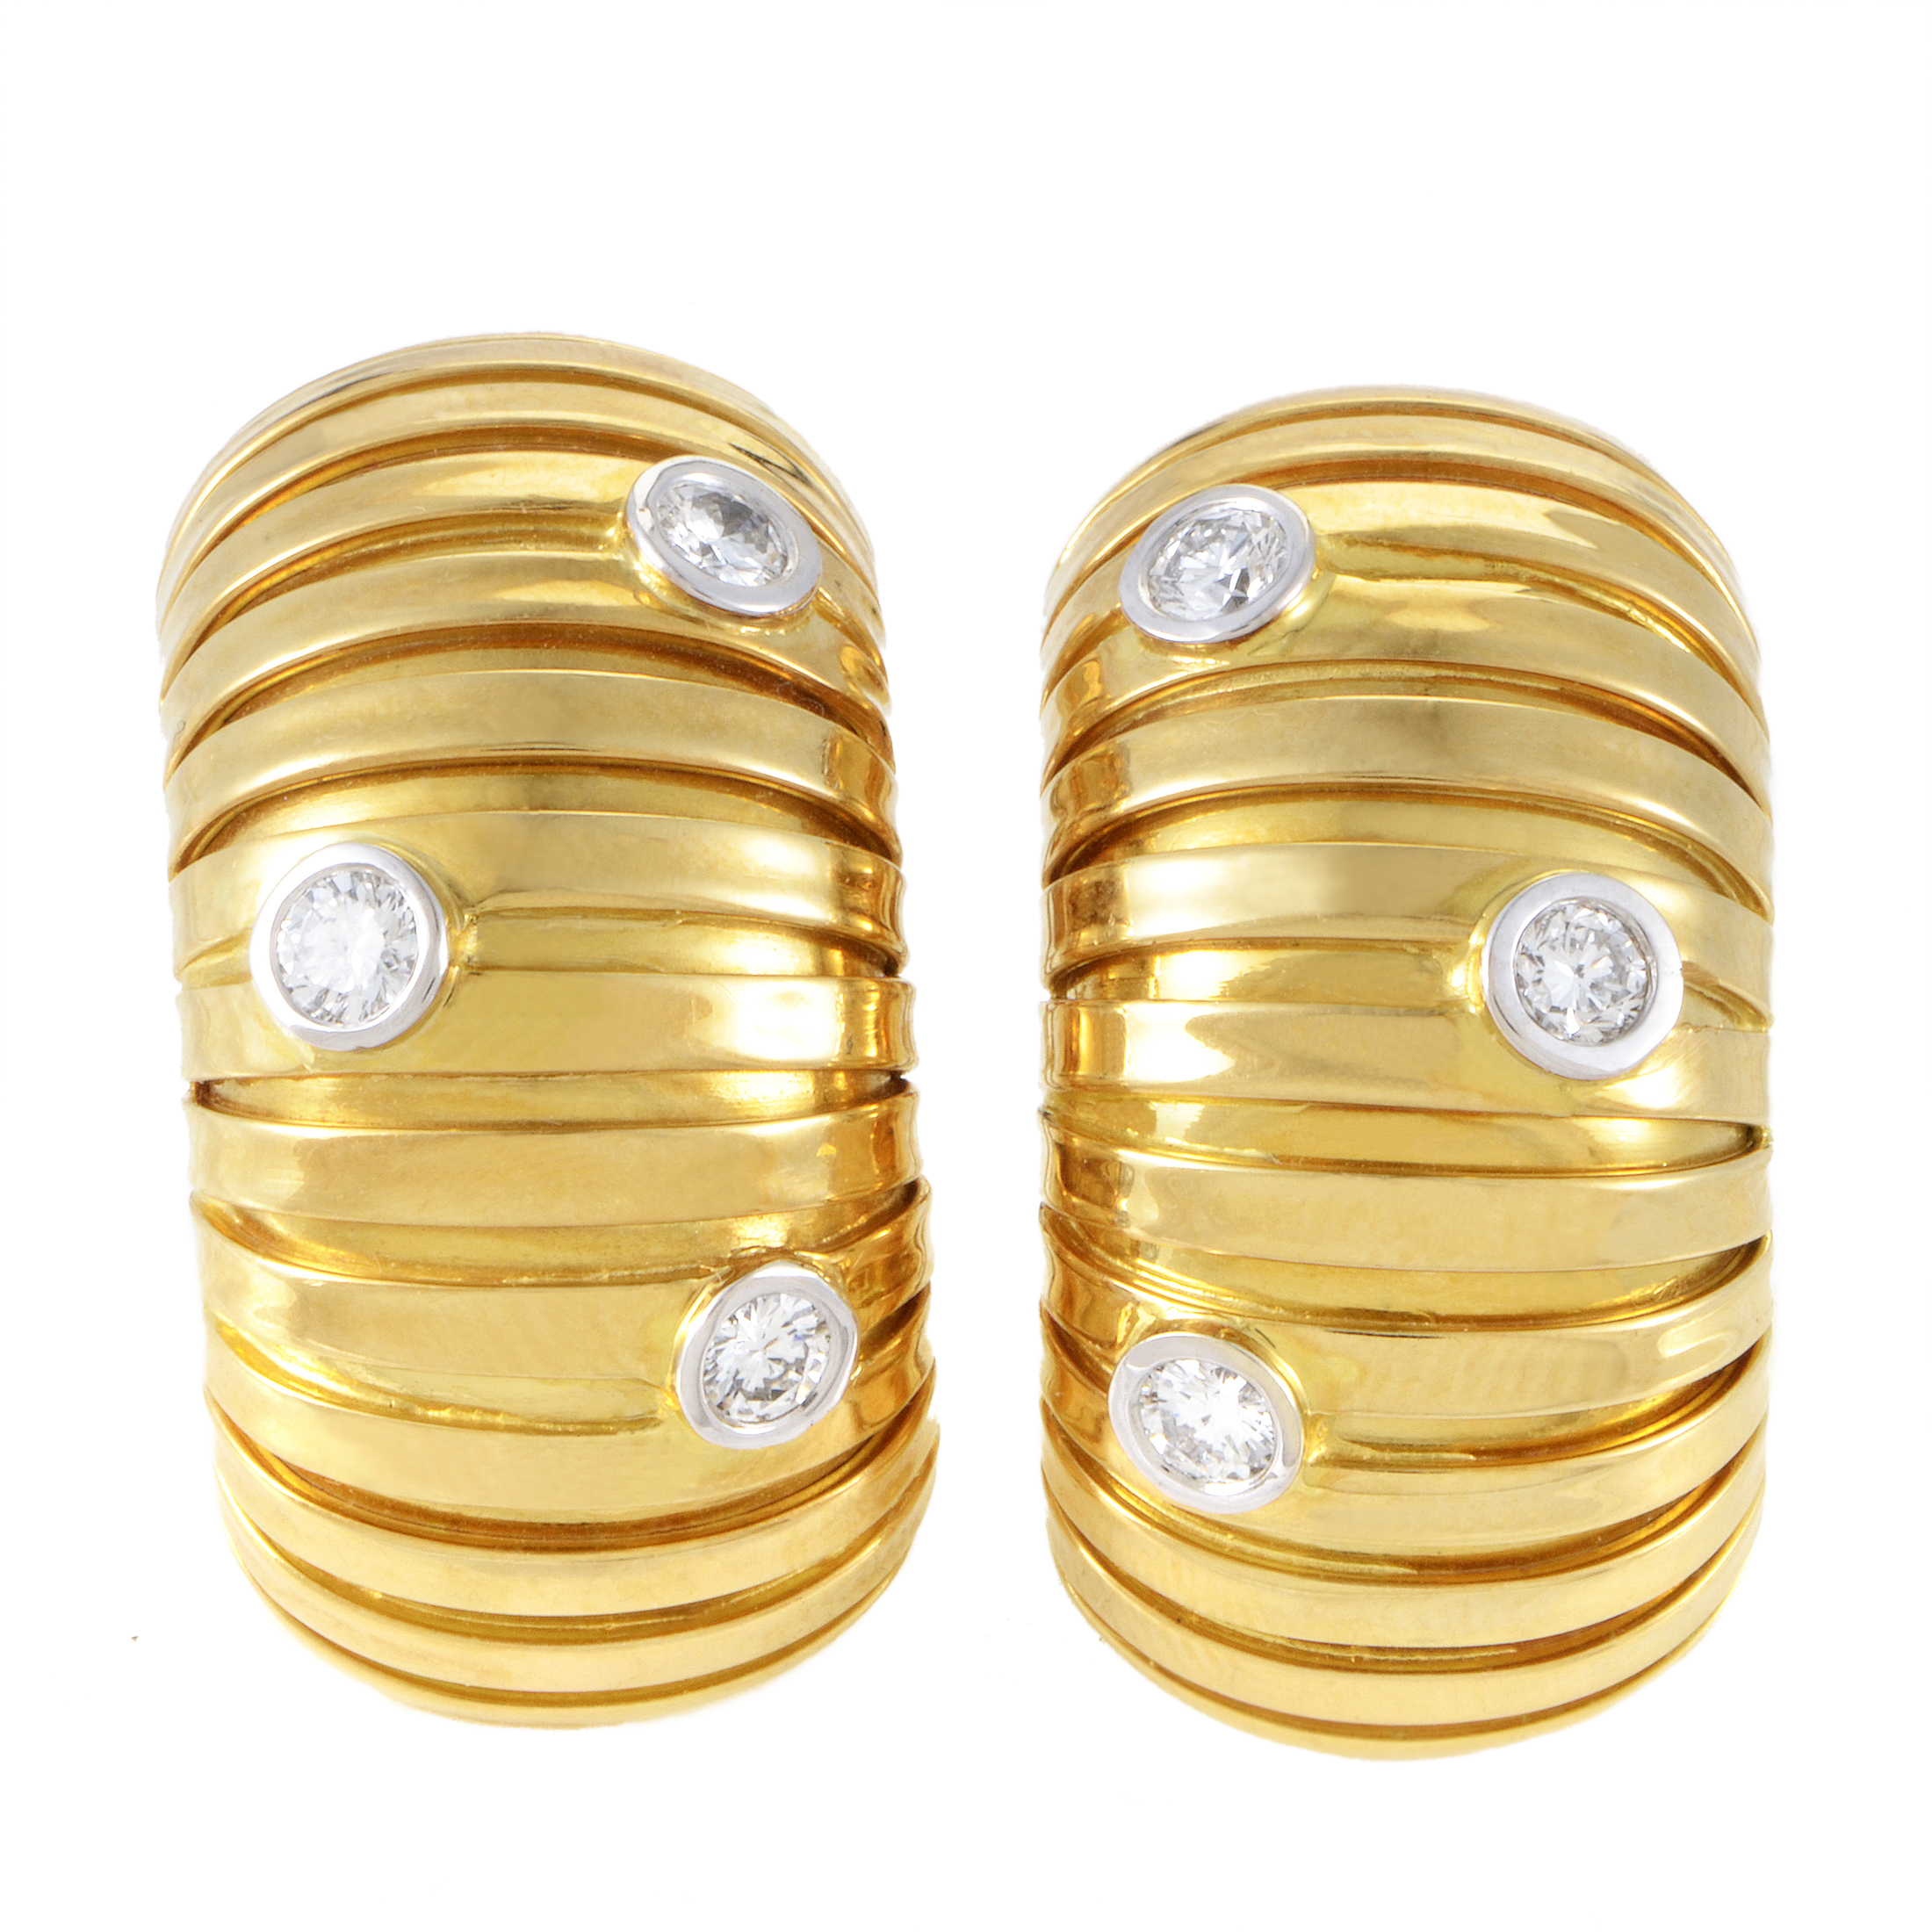 Carlo Weingrill Women's 18K Multi-Tone Gold Diamond Huggie Earrings